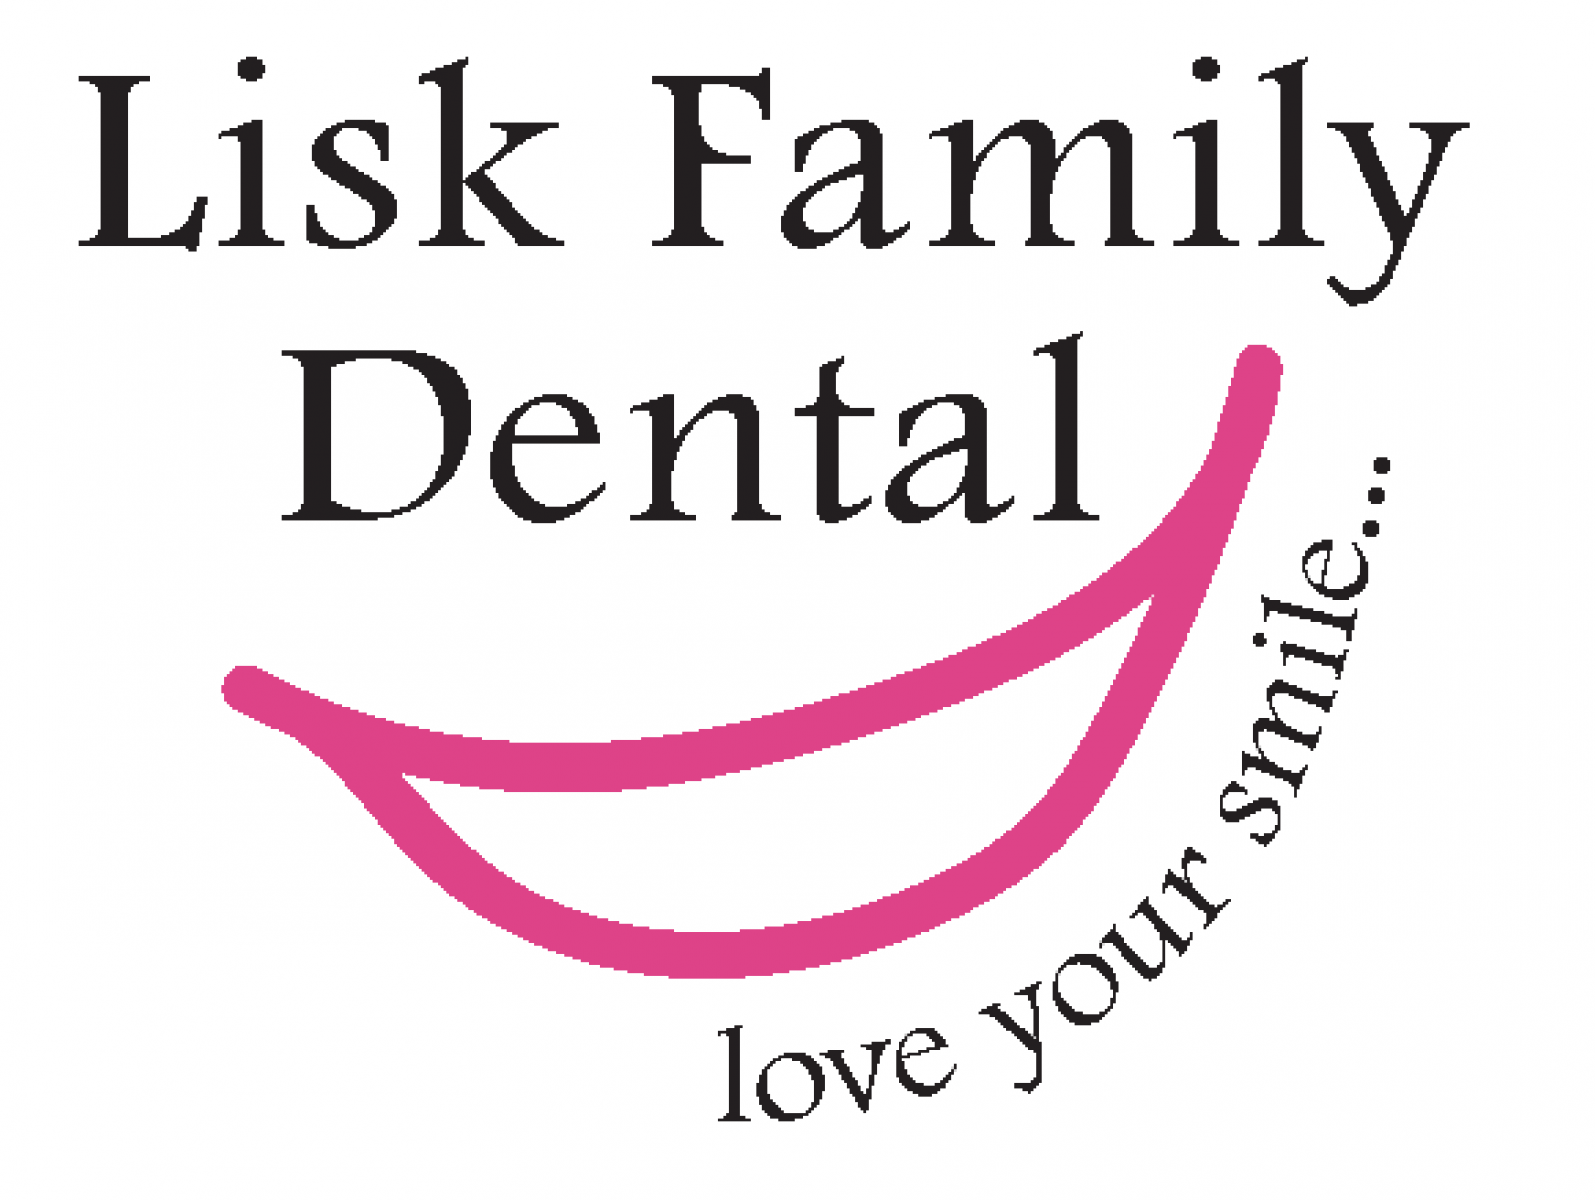 Lisk Family Dental logo